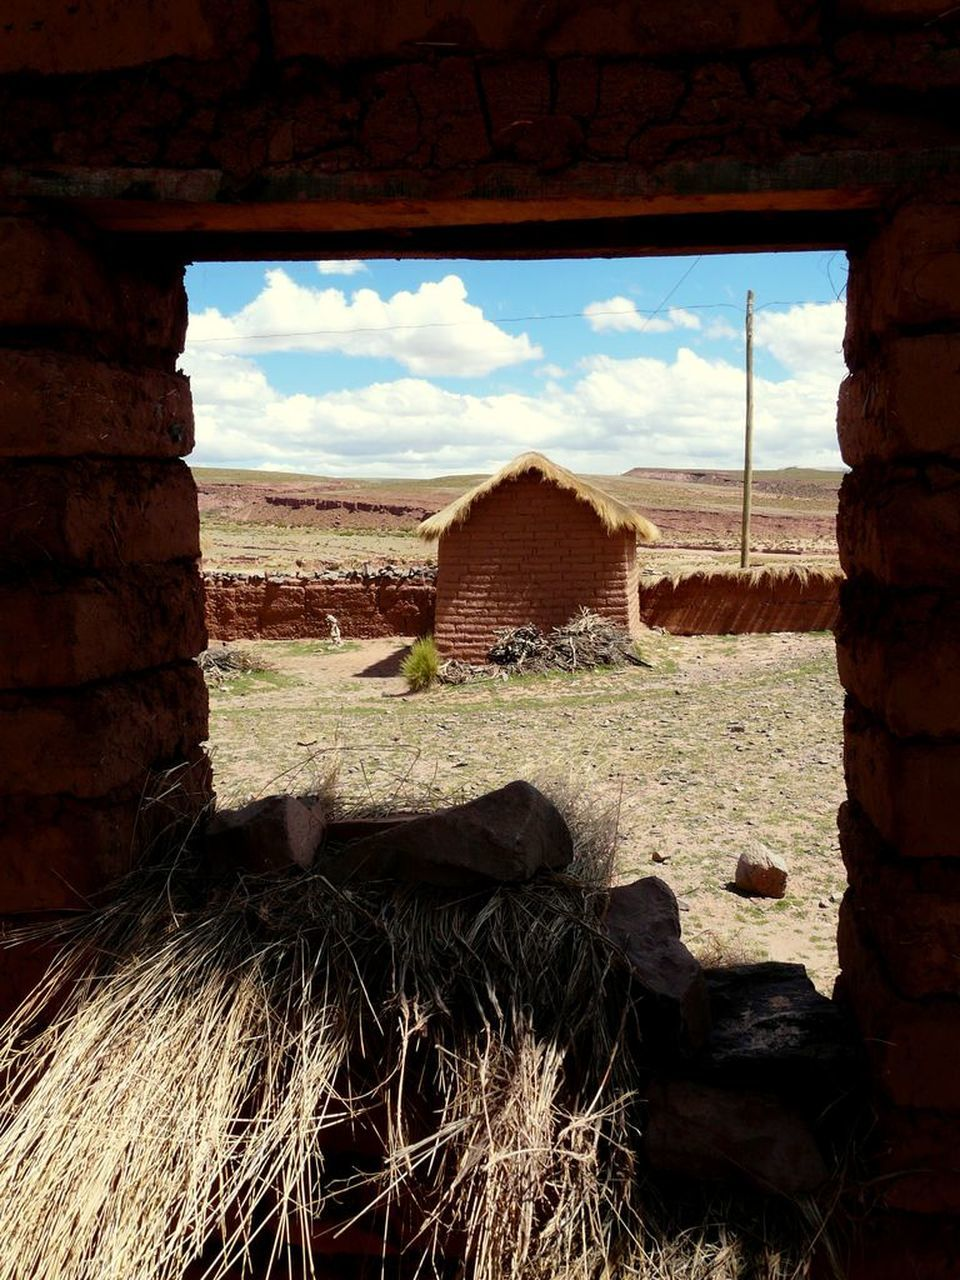 sky, cloud - sky, window, built structure, architecture, day, field, no people, building exterior, landscape, old ruin, rural scene, nature, agriculture, indoors, scenics, beauty in nature